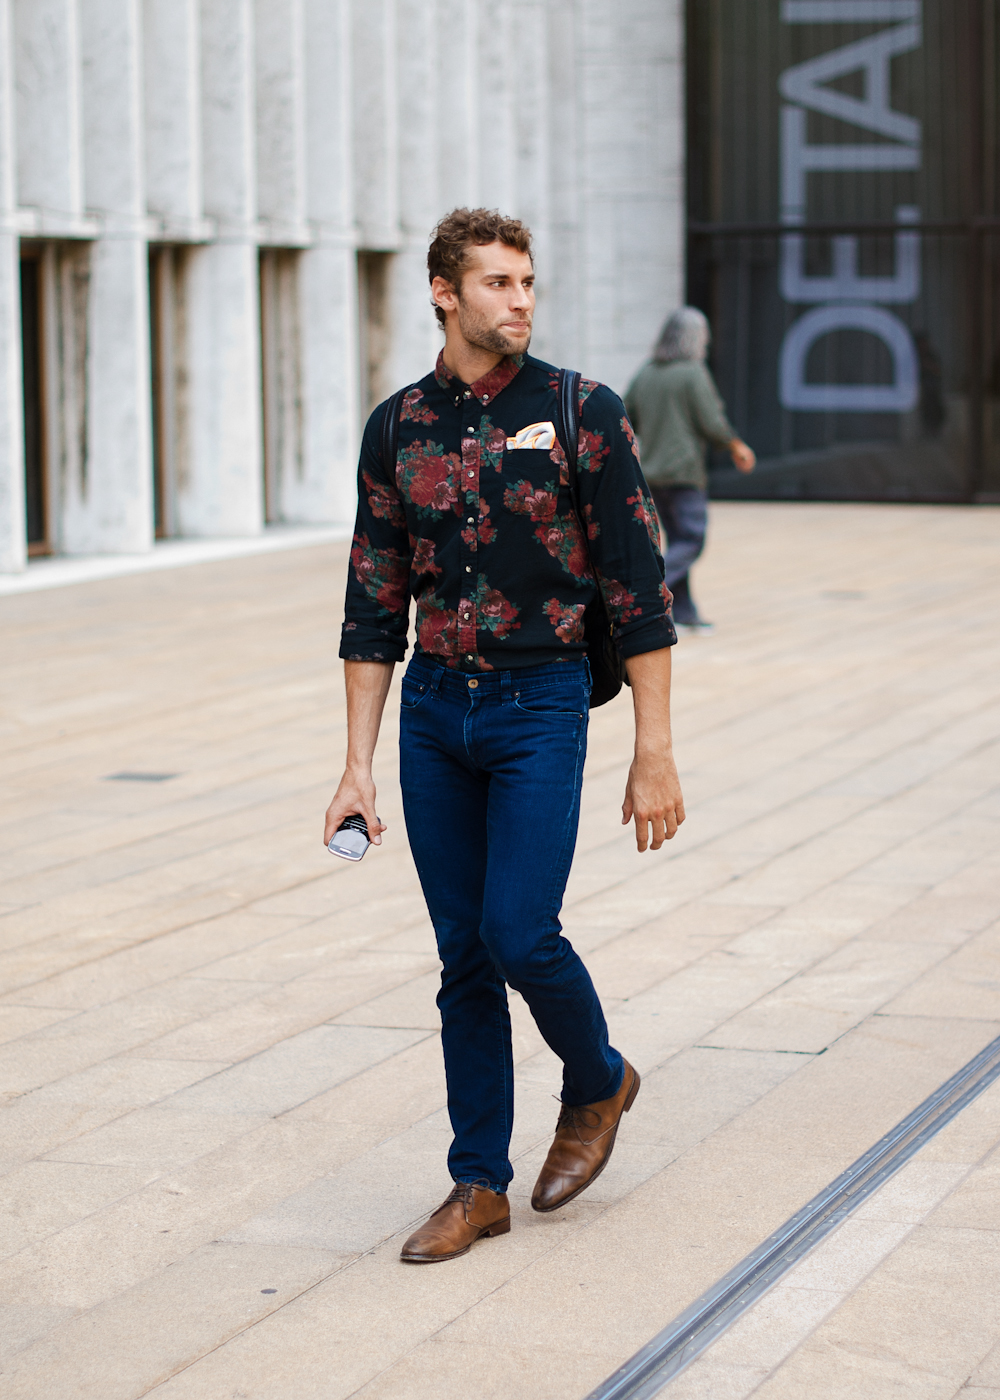 Mixing it up. Similar look: Obey Men's The Marcel Buttondown shirt (as shown).